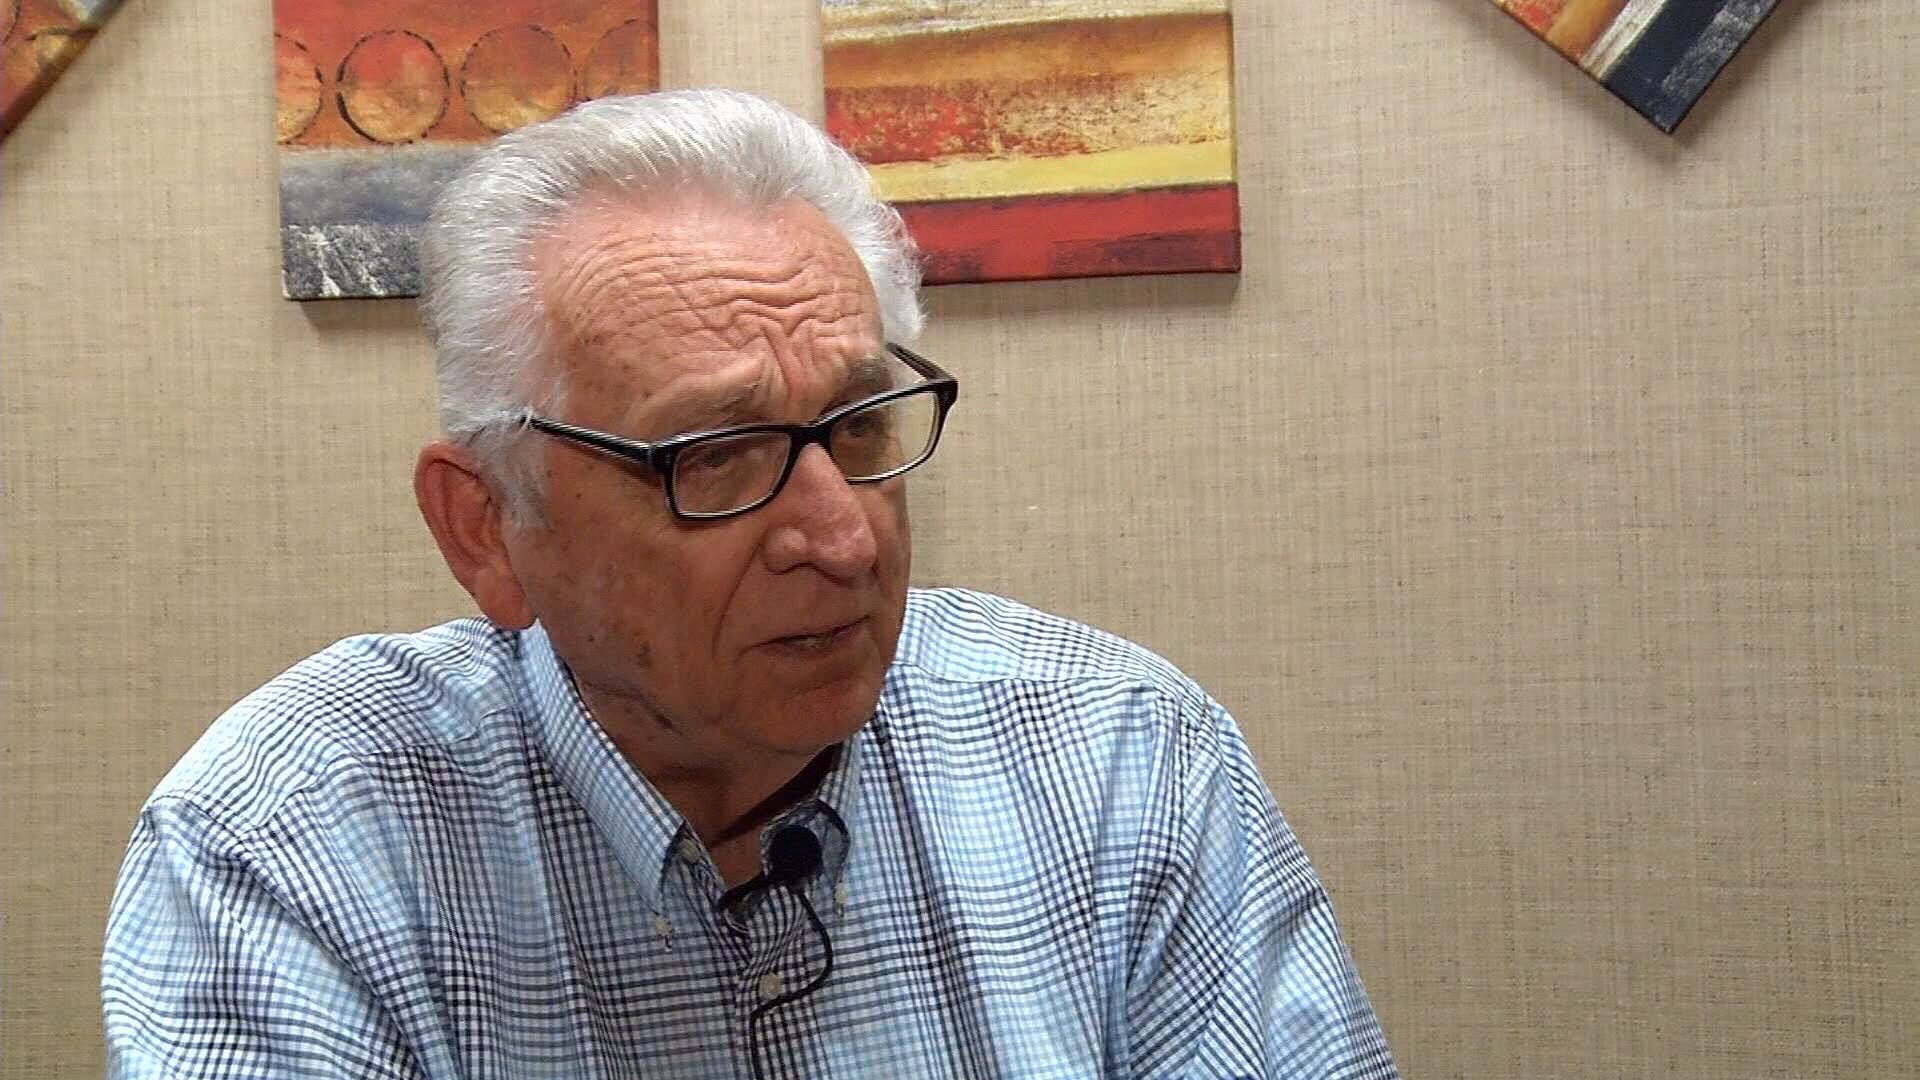 Former Corpus Christi Police Chief and Former Mayor Henry Garrett underwent major surgery Tuesday morning.